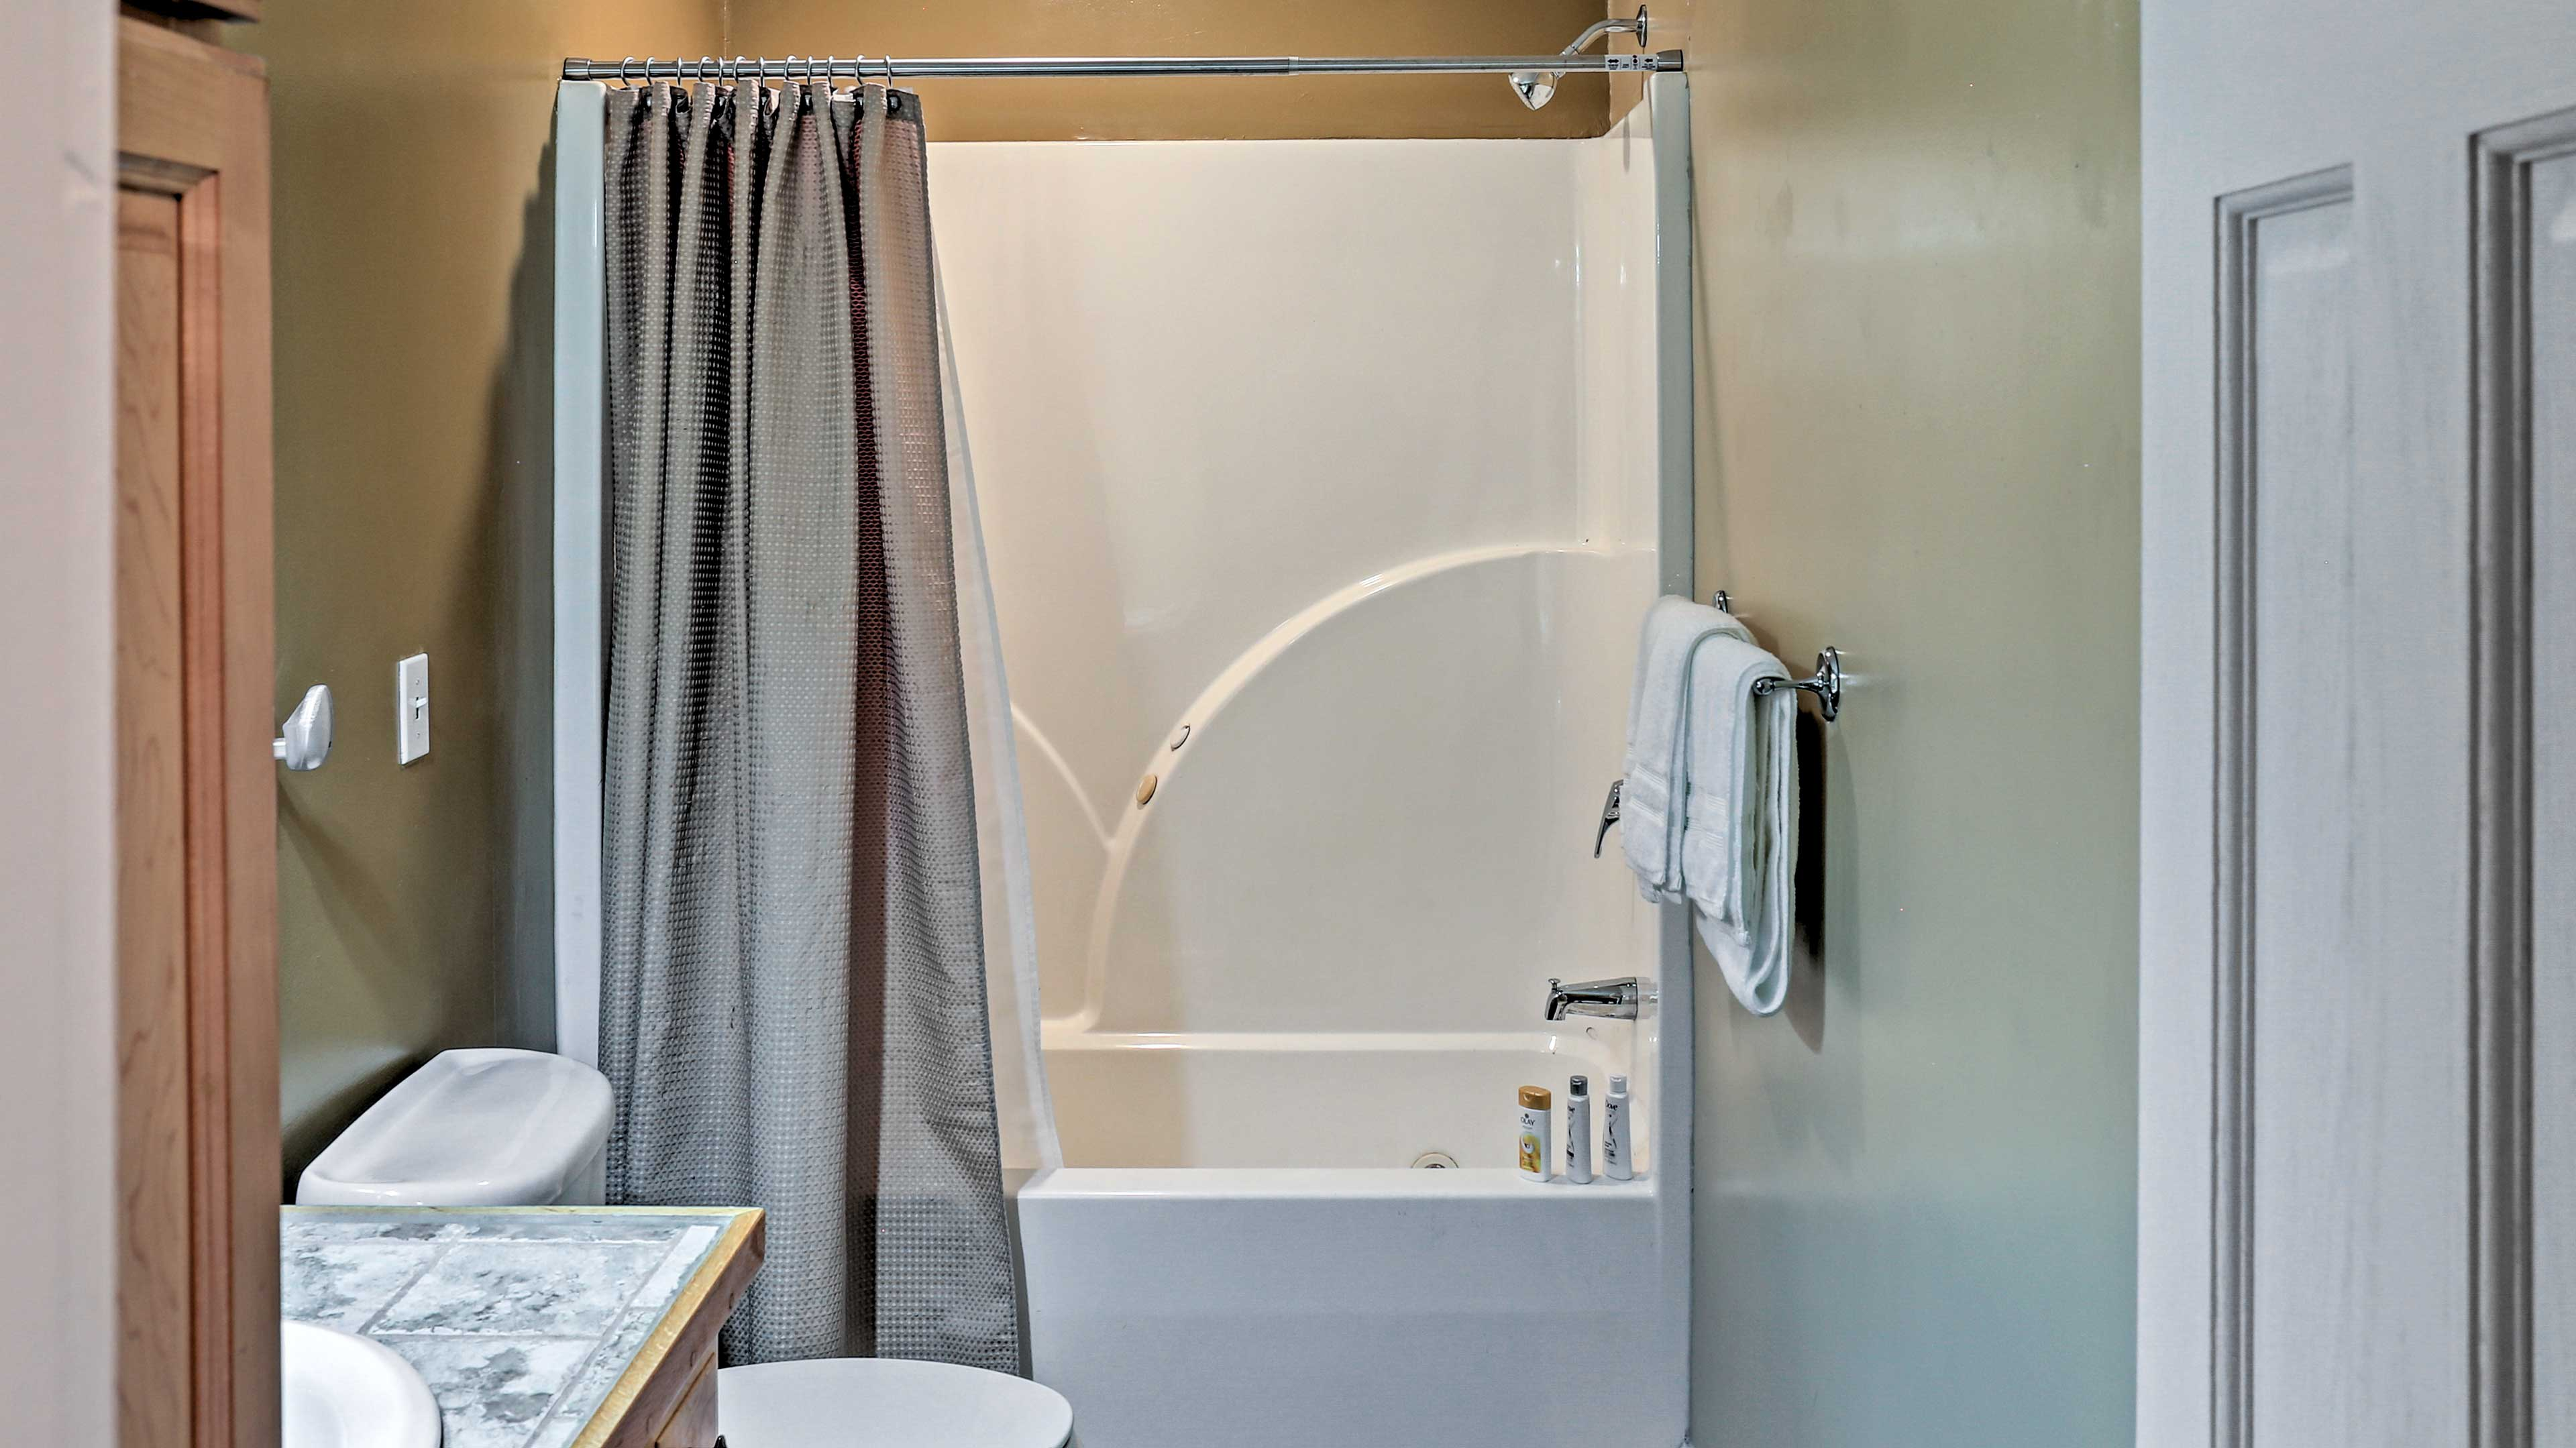 Get freshened up in the second full bathroom.